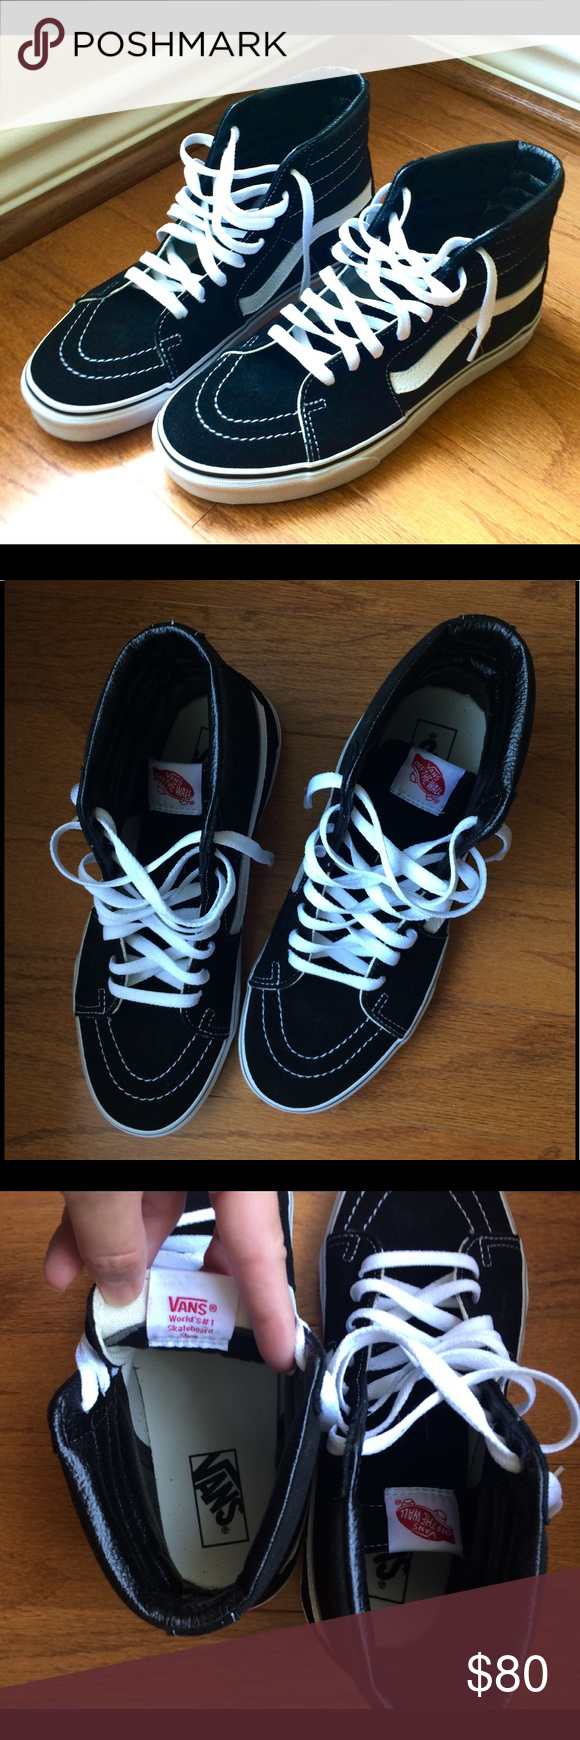 840b50ebf6e1f0 Vans High Tops Black and White Shoes Size 9 Women Vans High Tops Black and  White Shoes Size 9 Women Worn only 1-2 times No flaws No stains